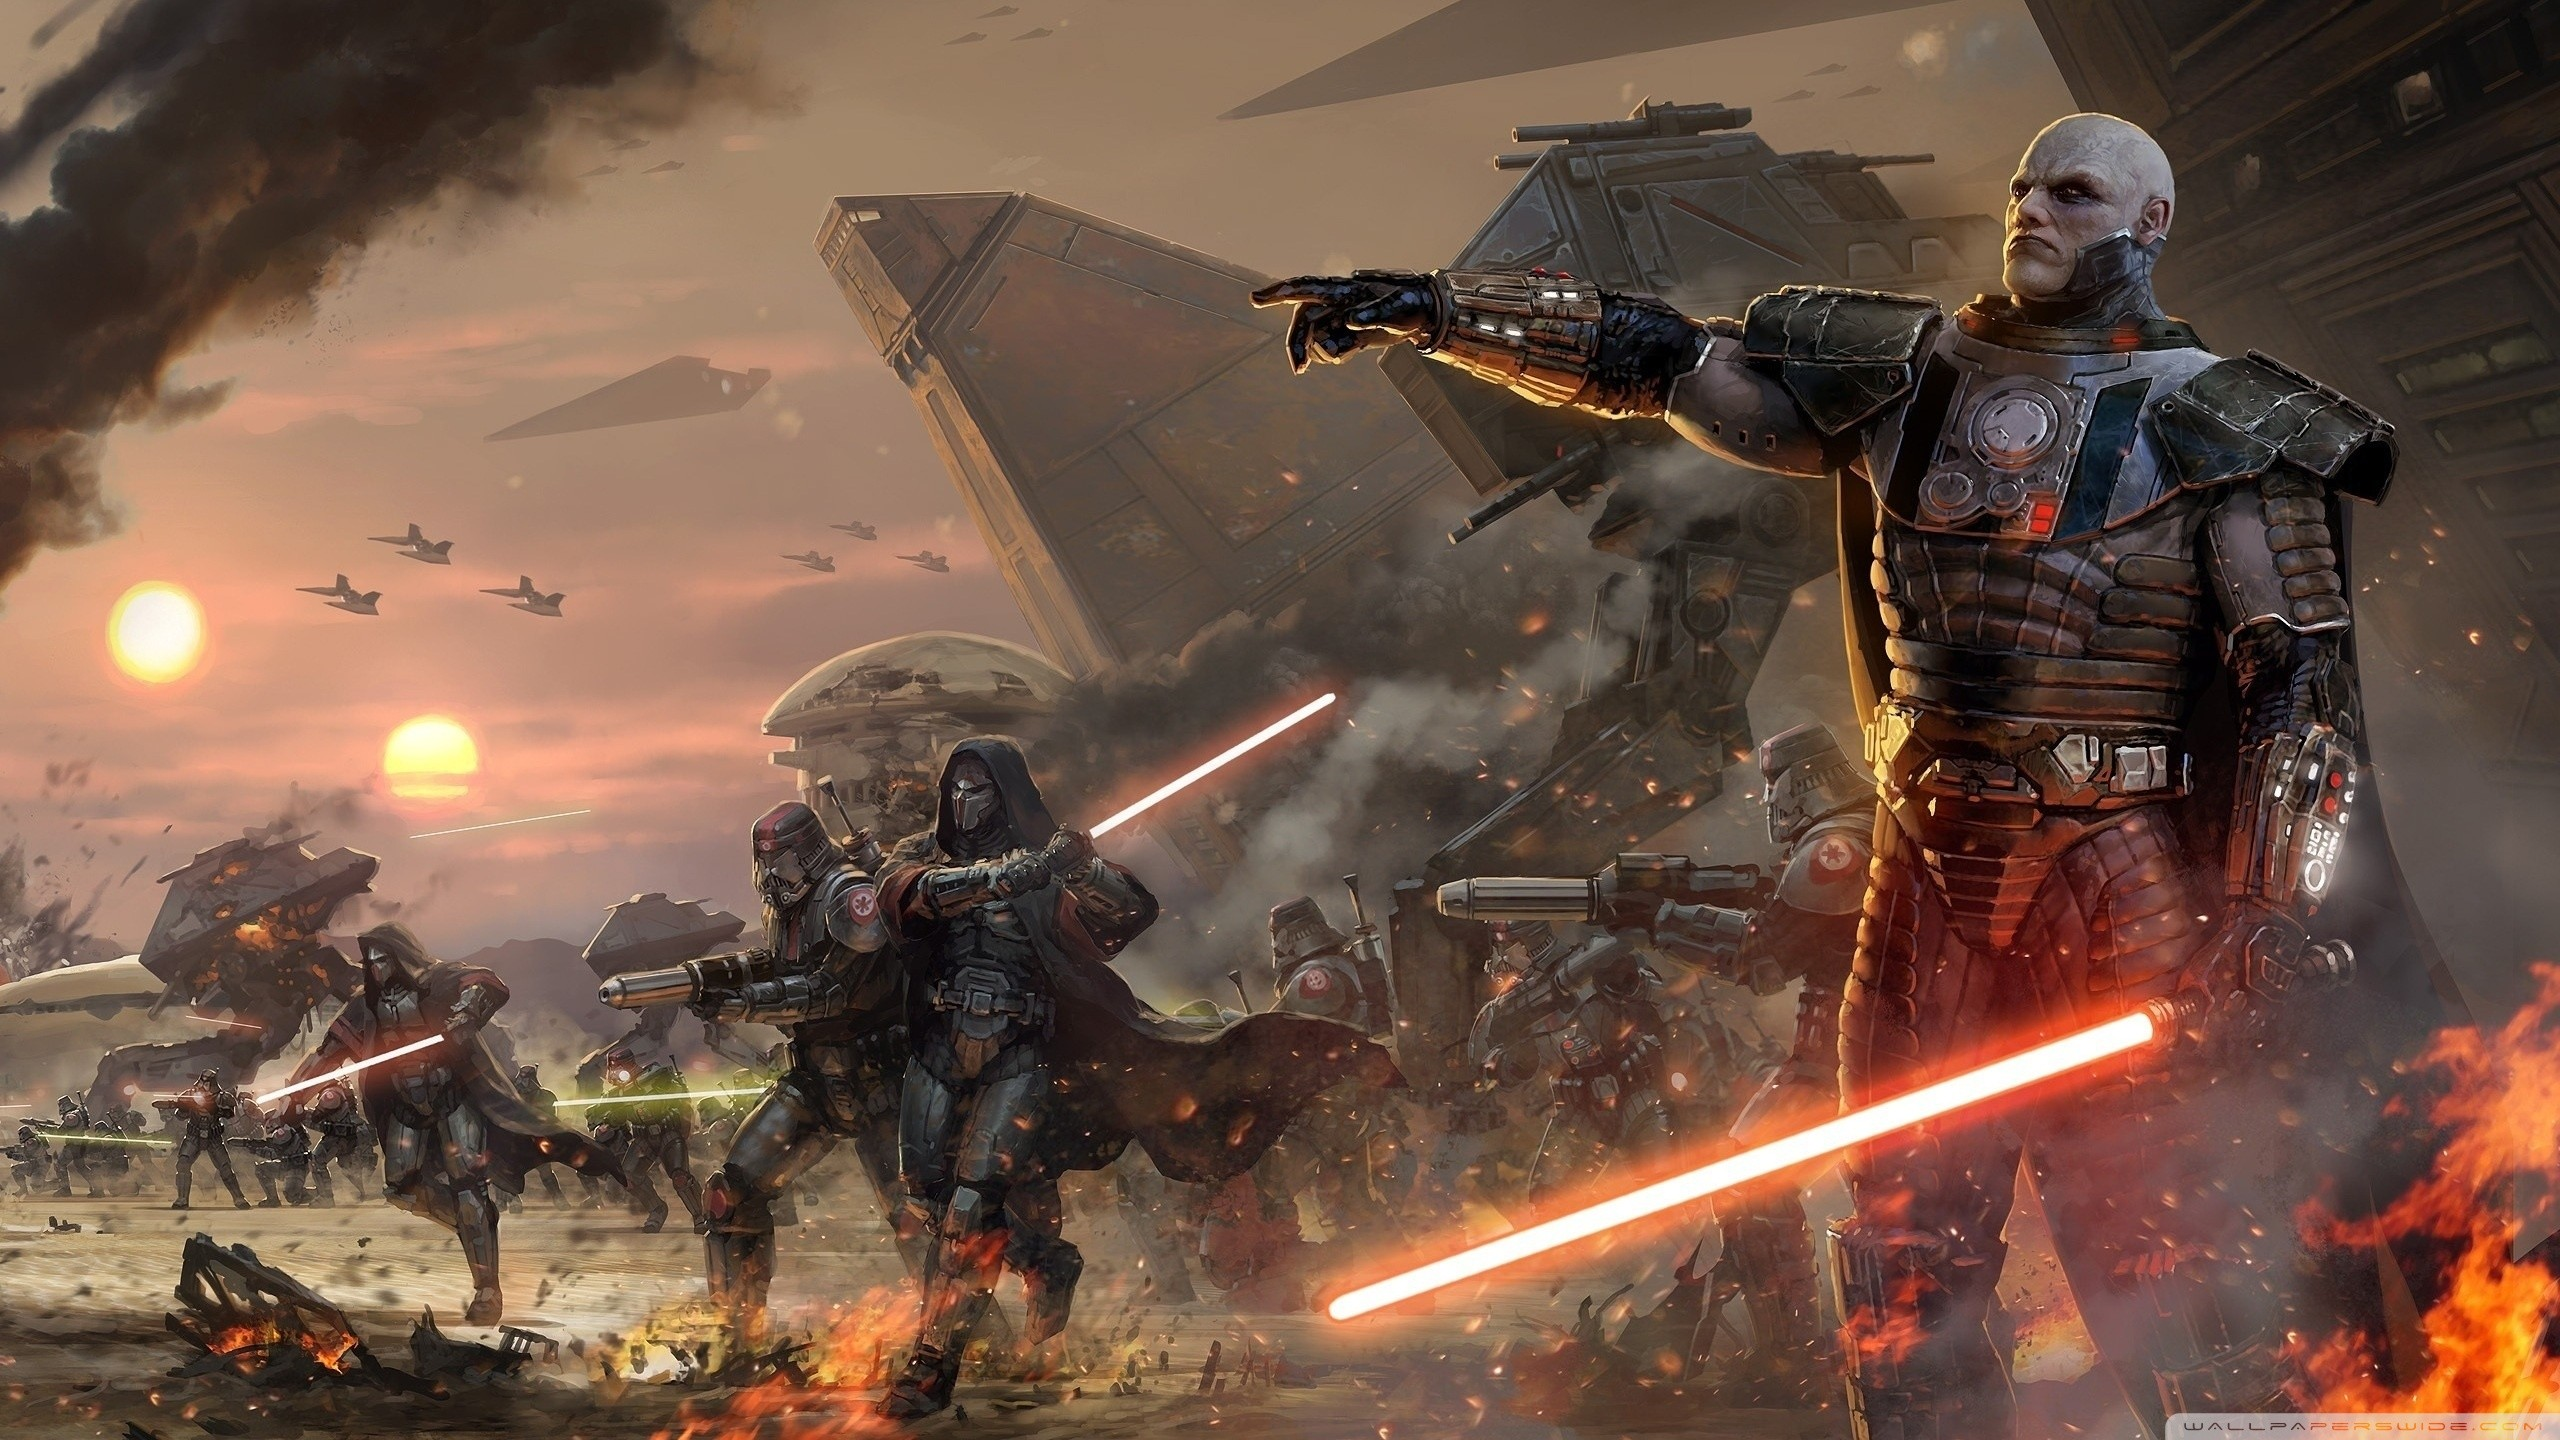 Swtor Wallpaper 2560x1440 72 Images